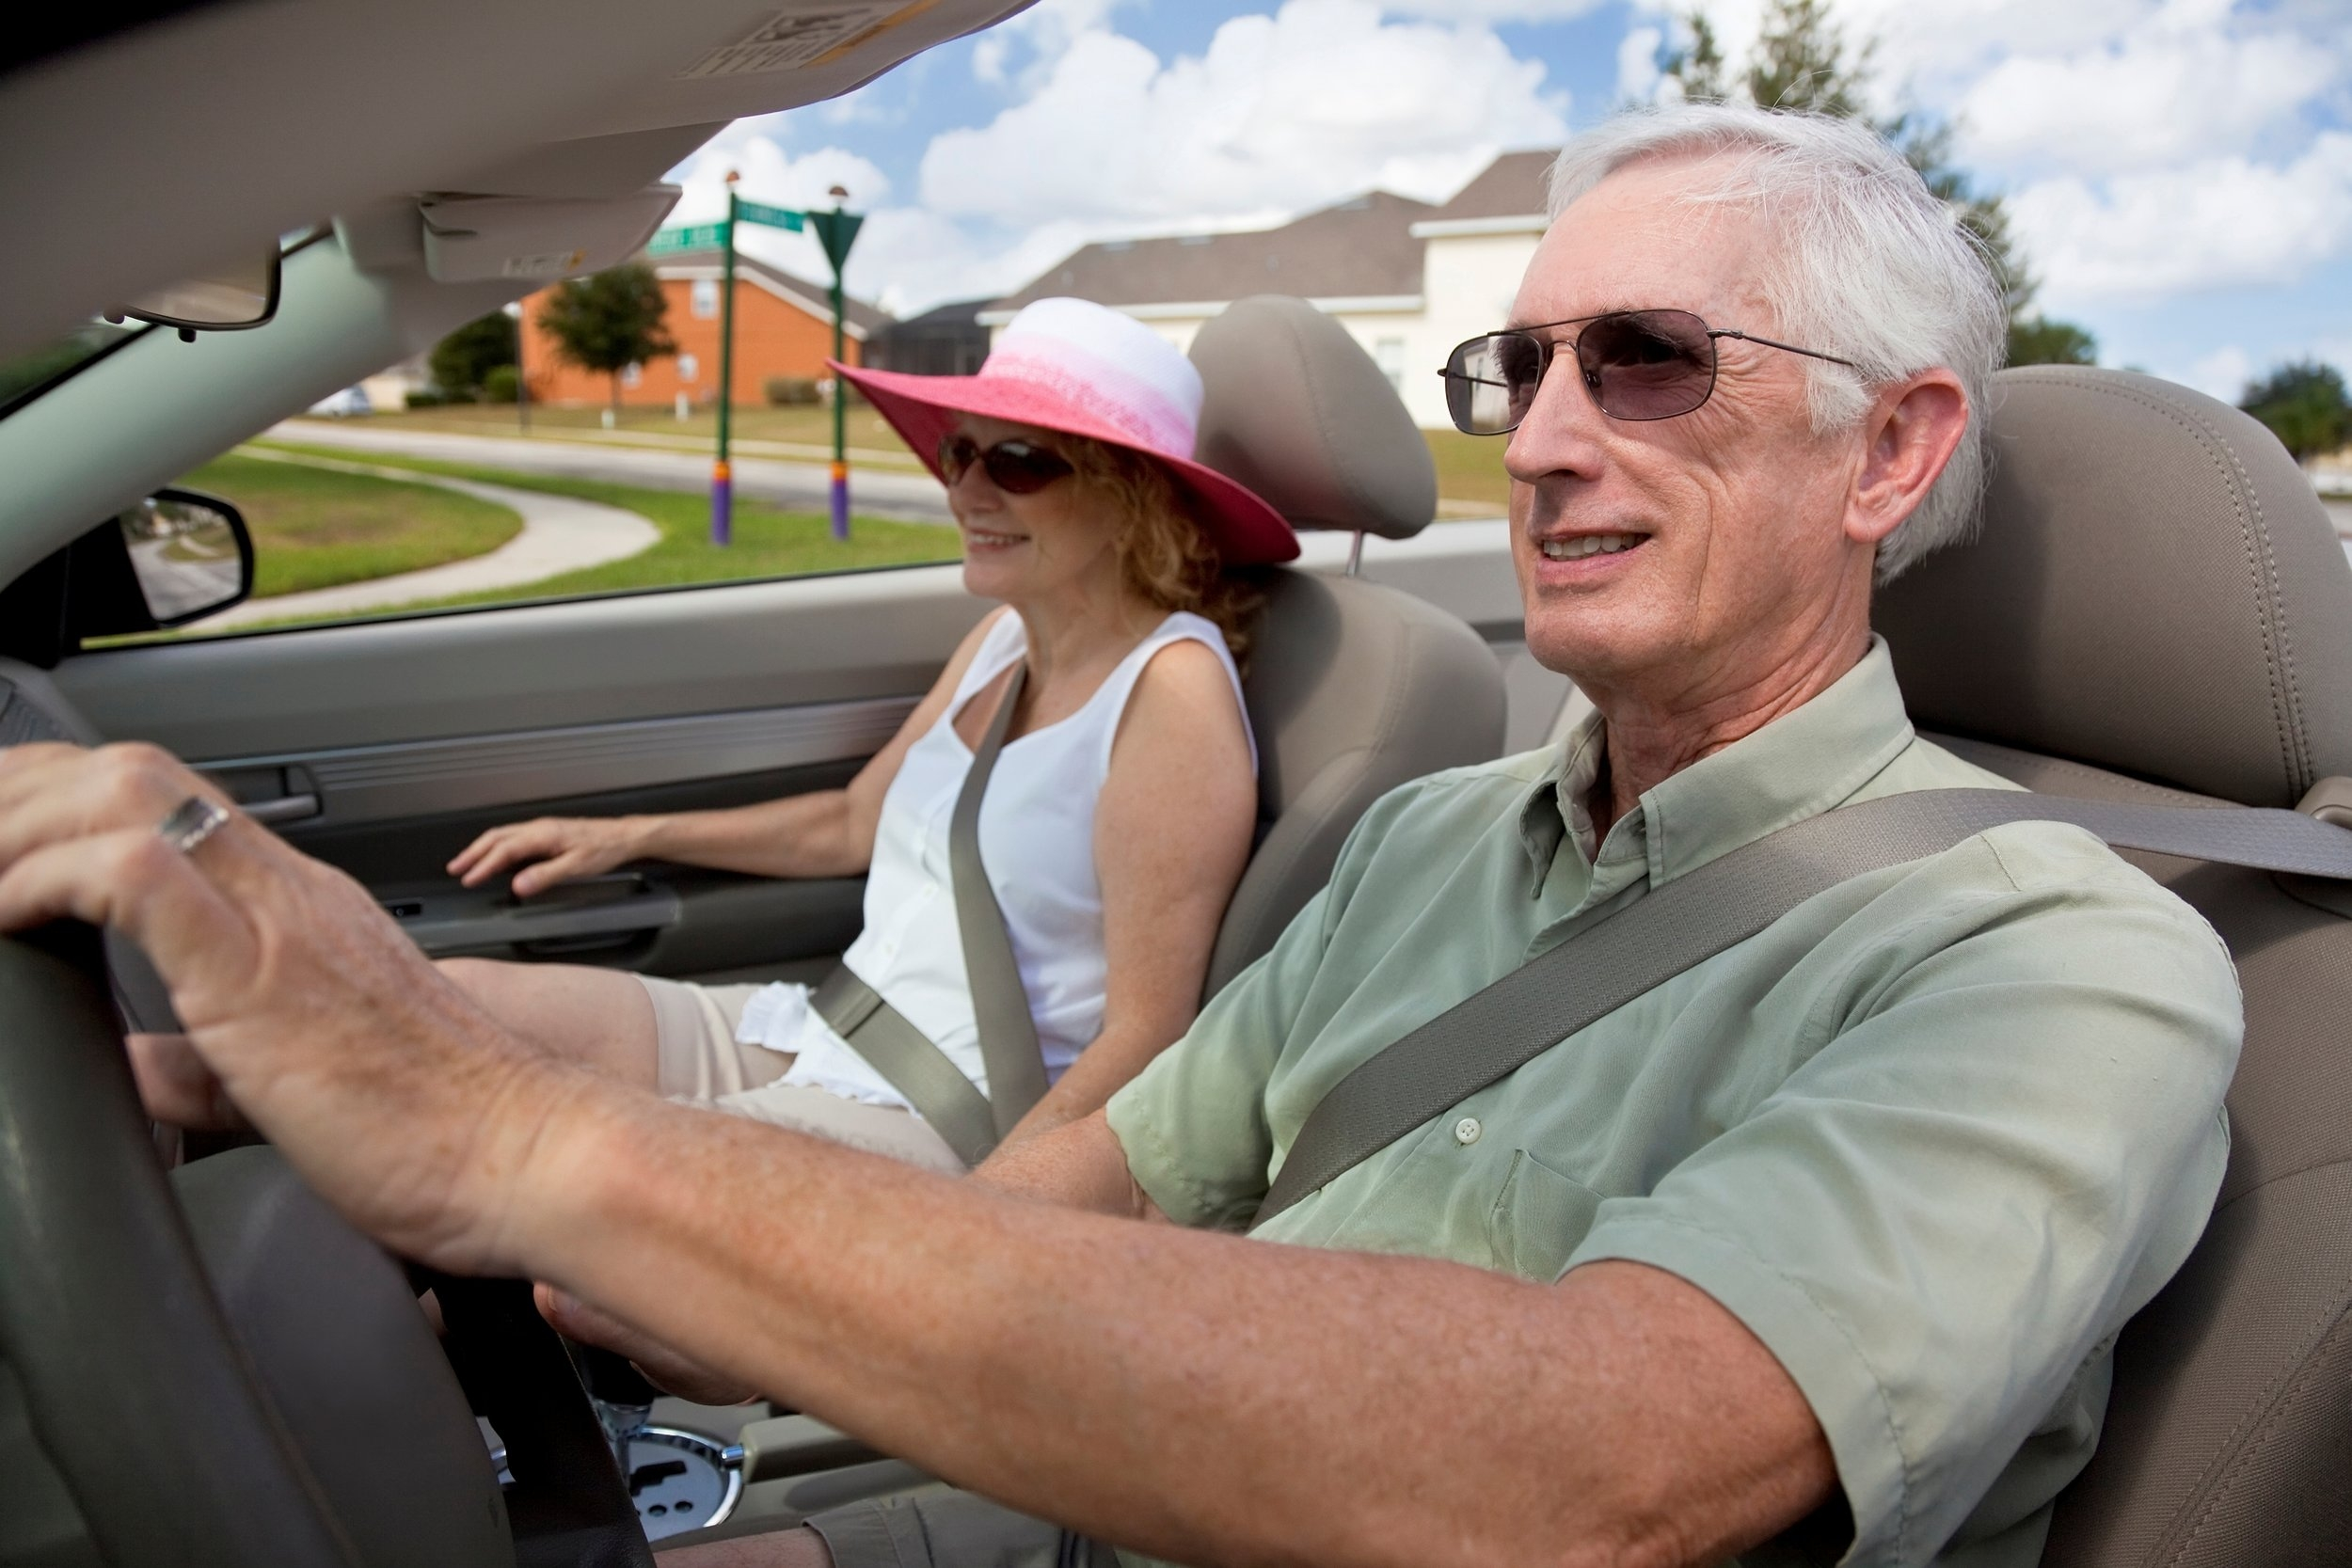 Senior/Mature Driver Improvement - Lower your car insurance premiums by up to 15%